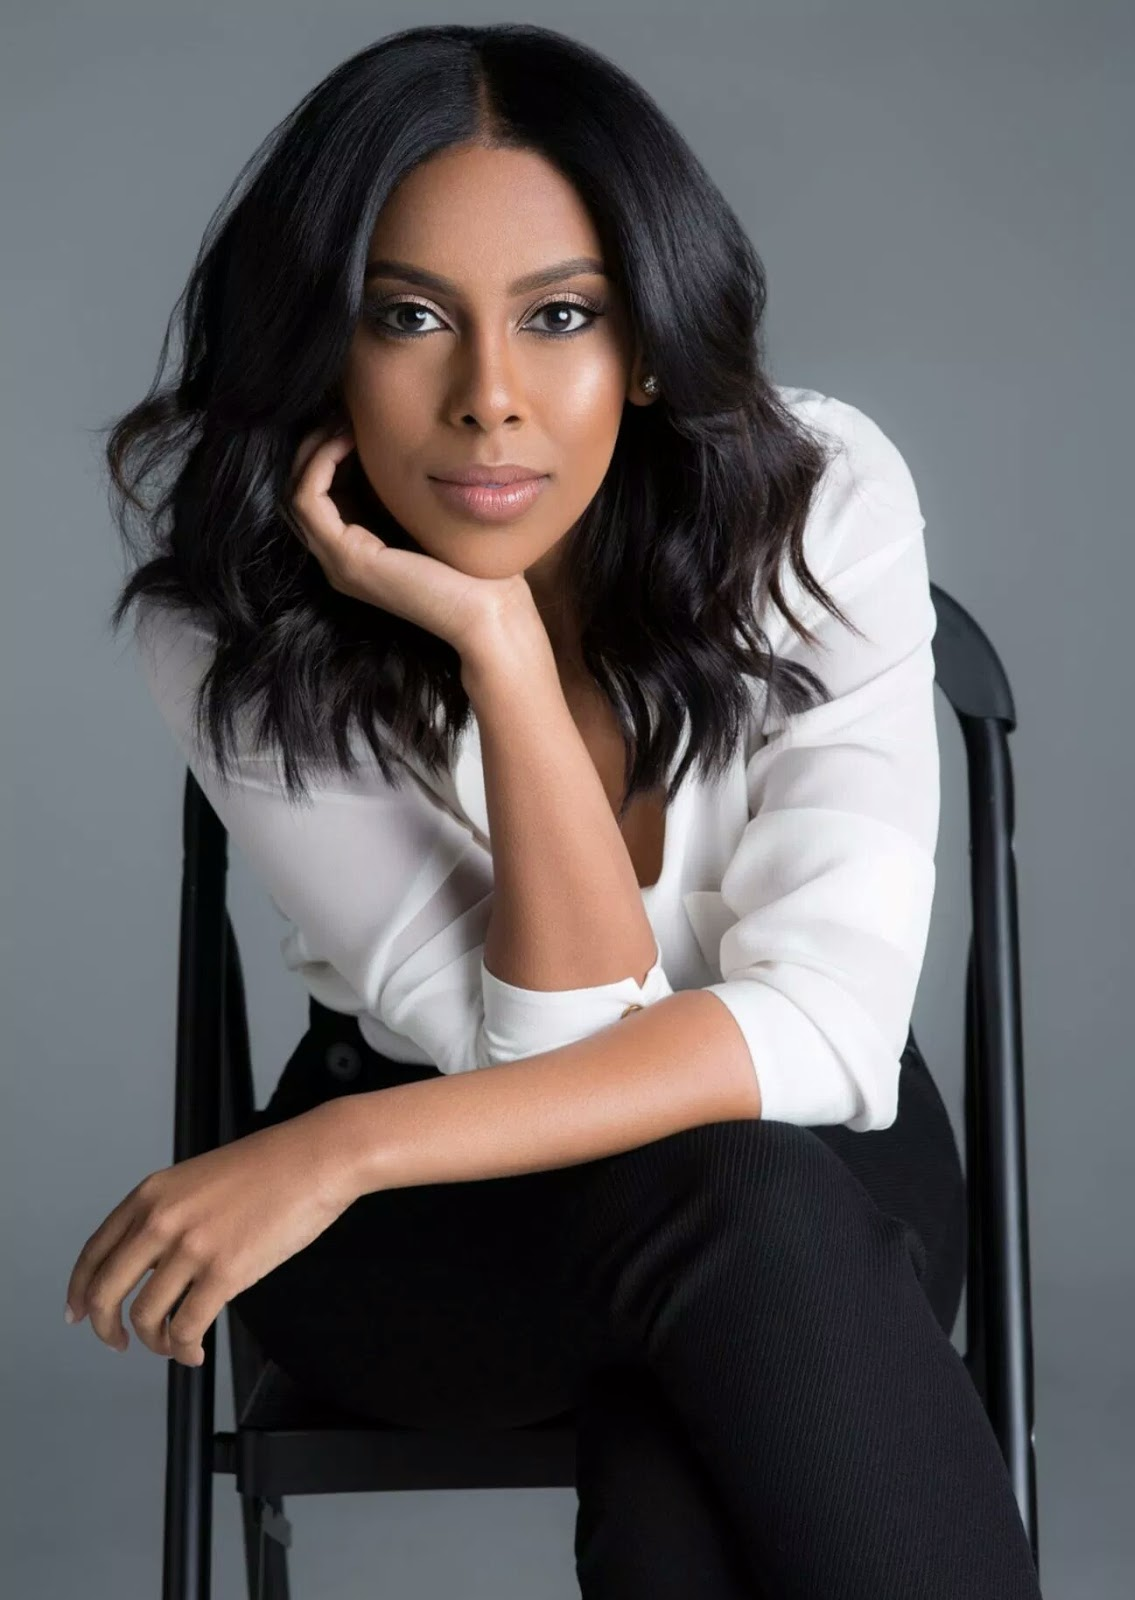 Yodit Tewolde Beautiful Lawyer and TV analyst